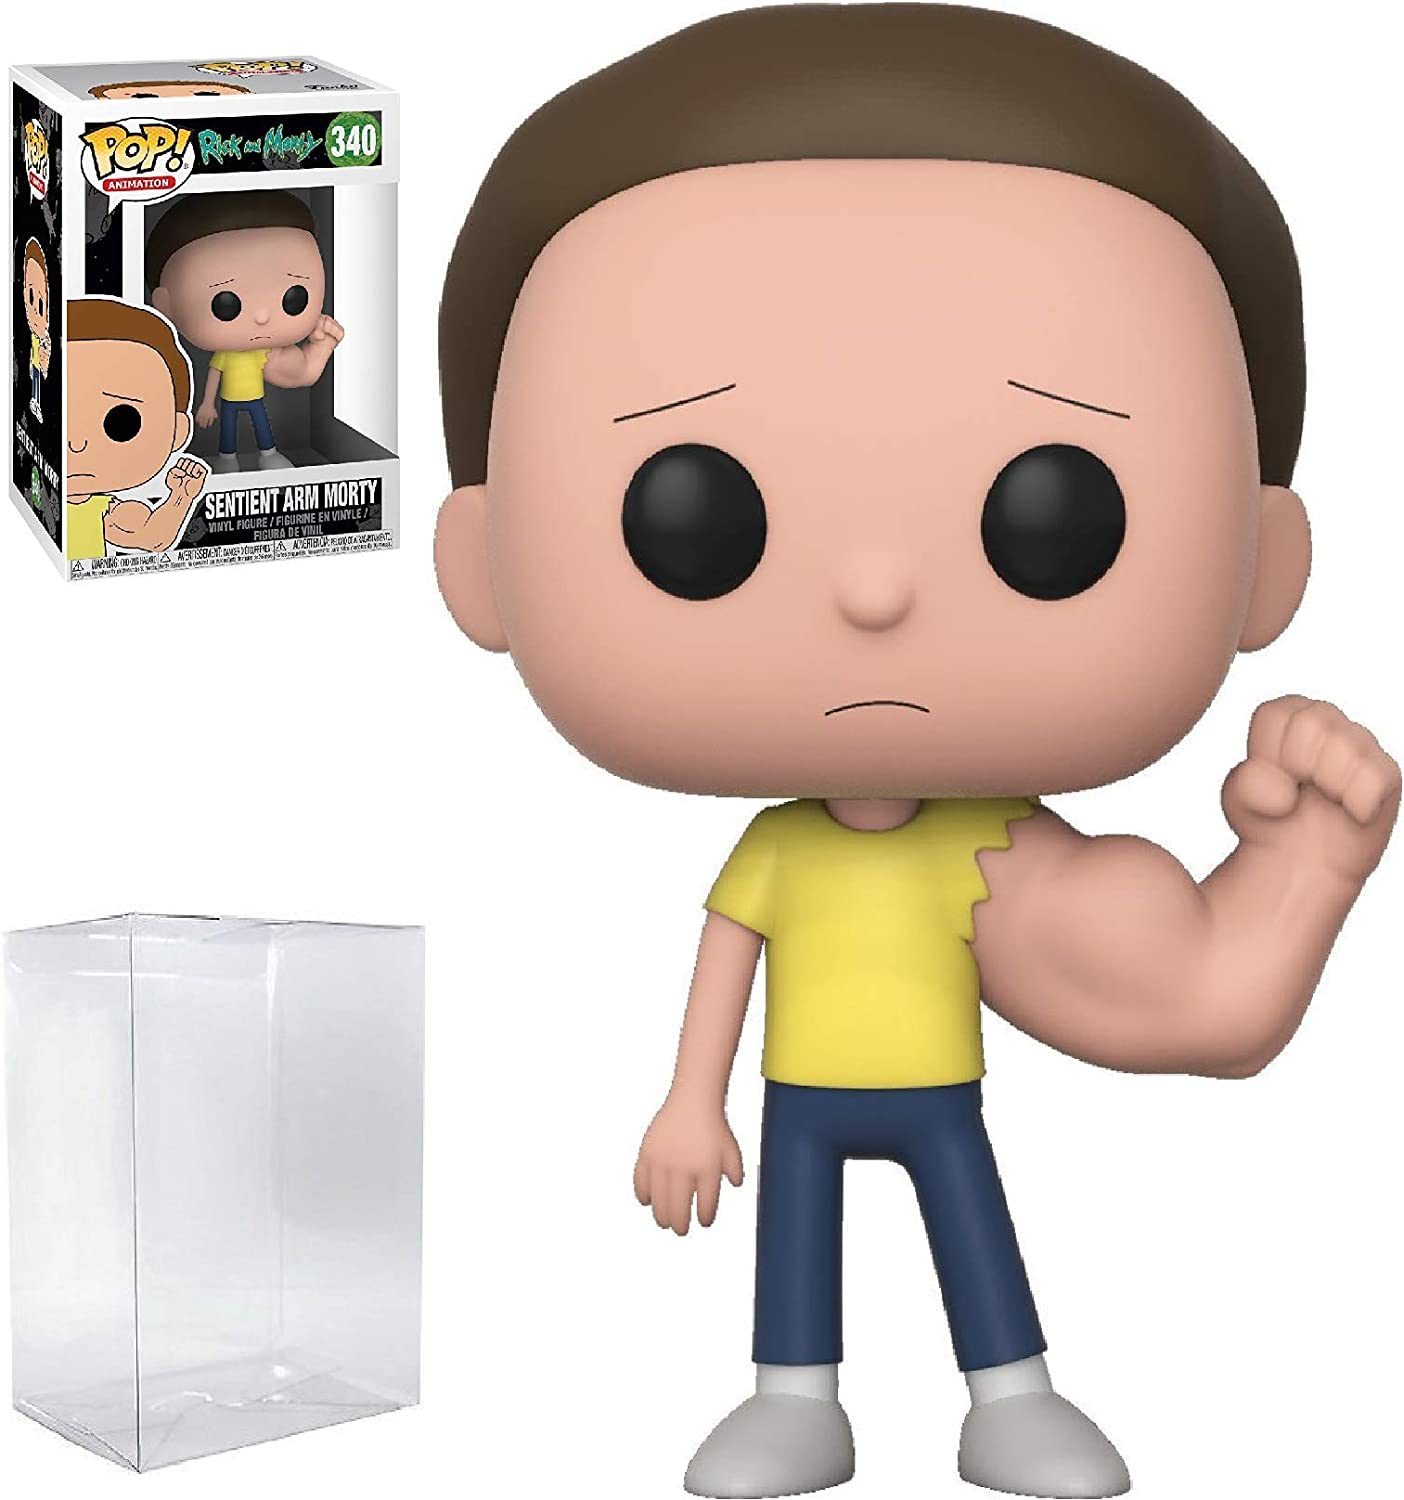 Rick and Morty Funko Mystery Minis Series 2 Vinyl Figures Sentient Arm Morty